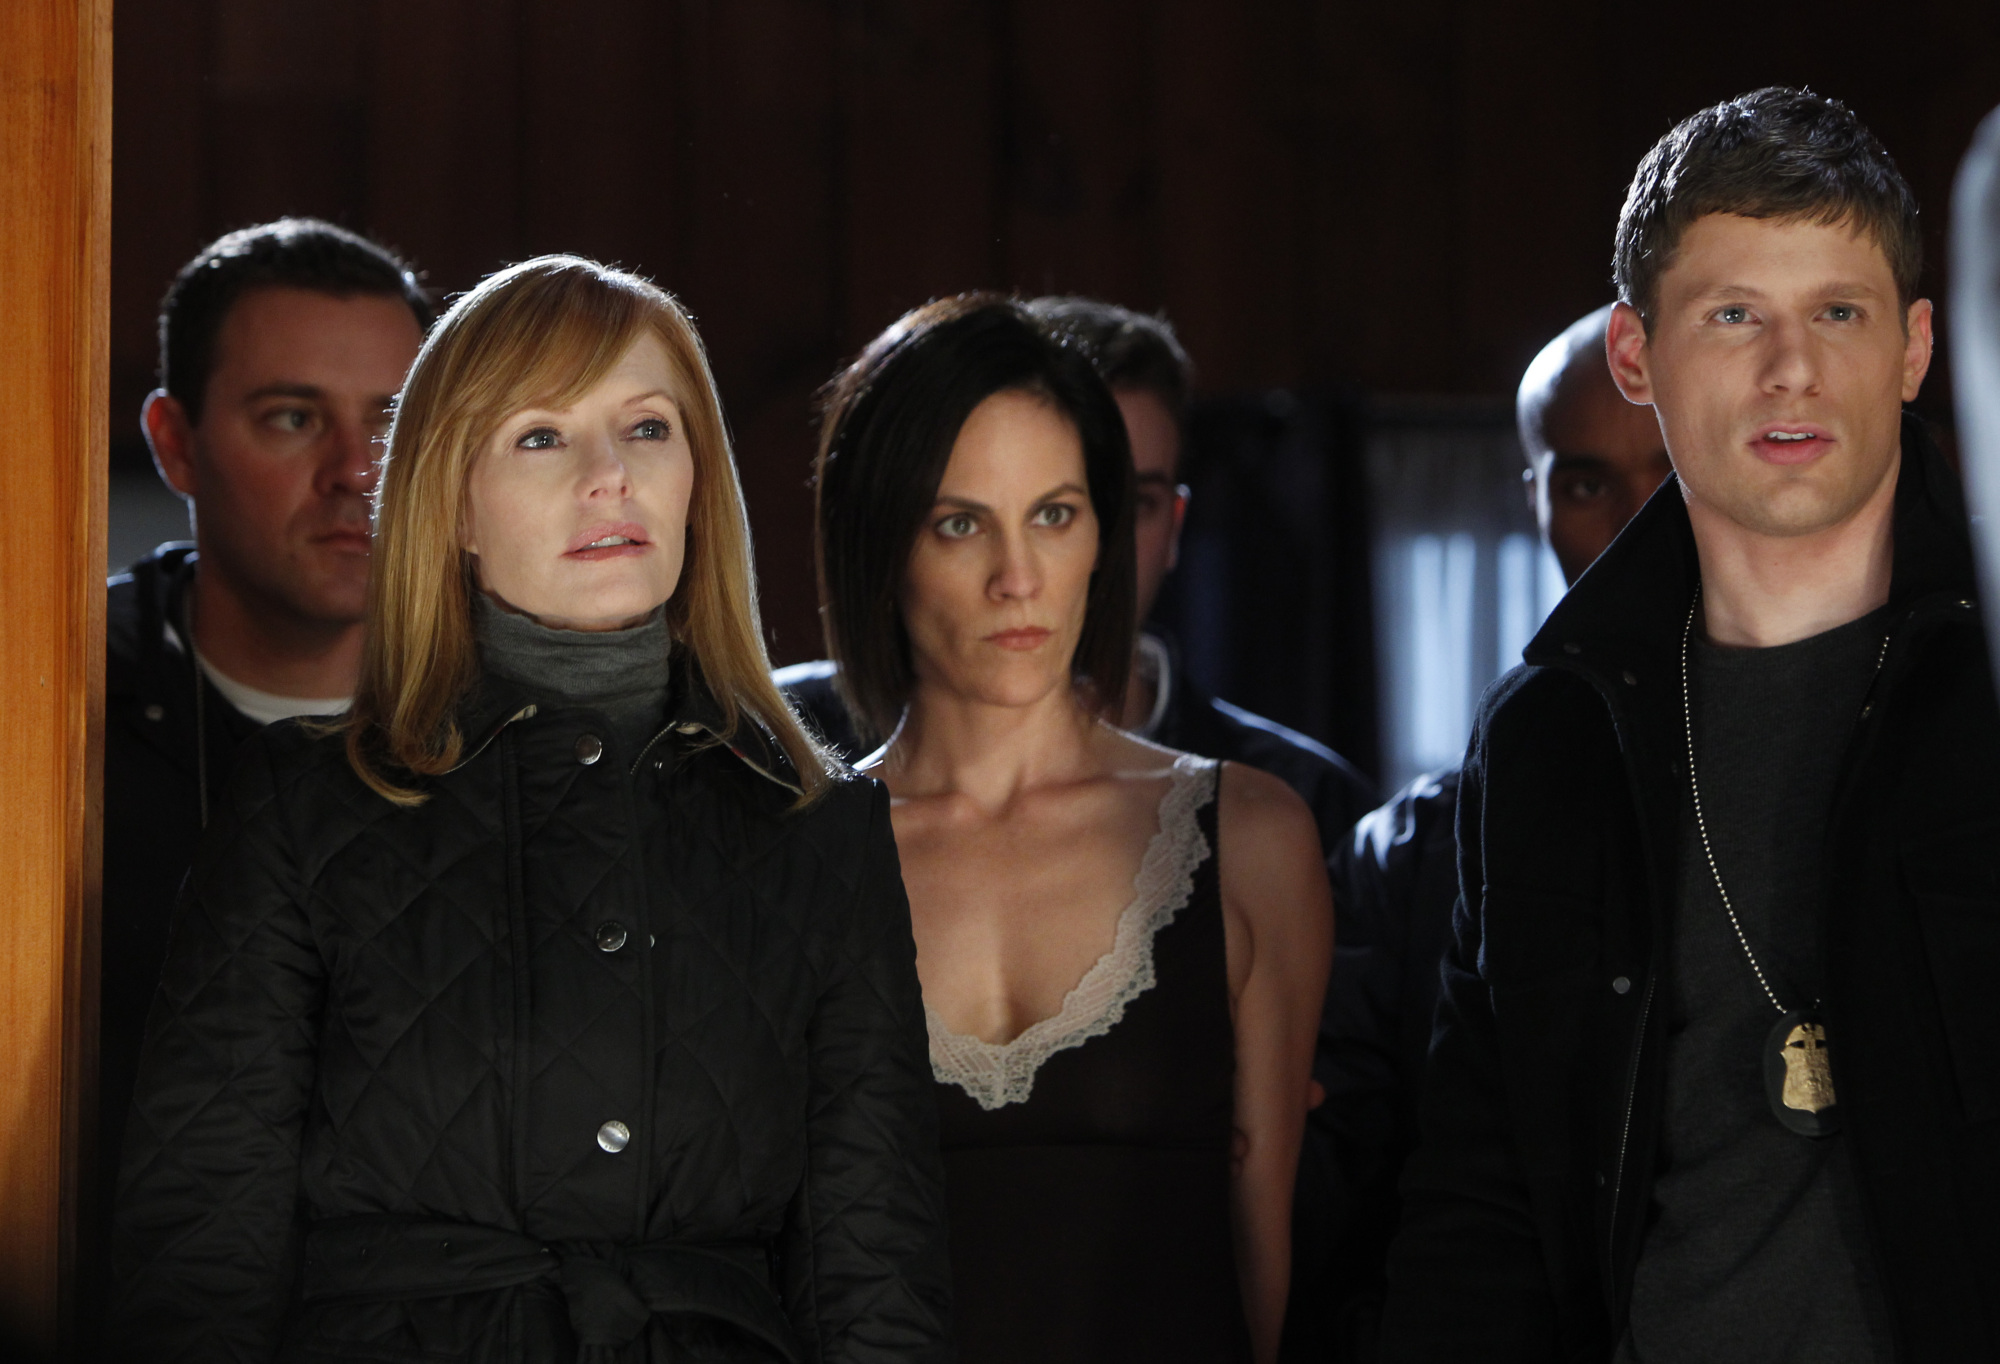 Catherine, Laura and Agent Pratt